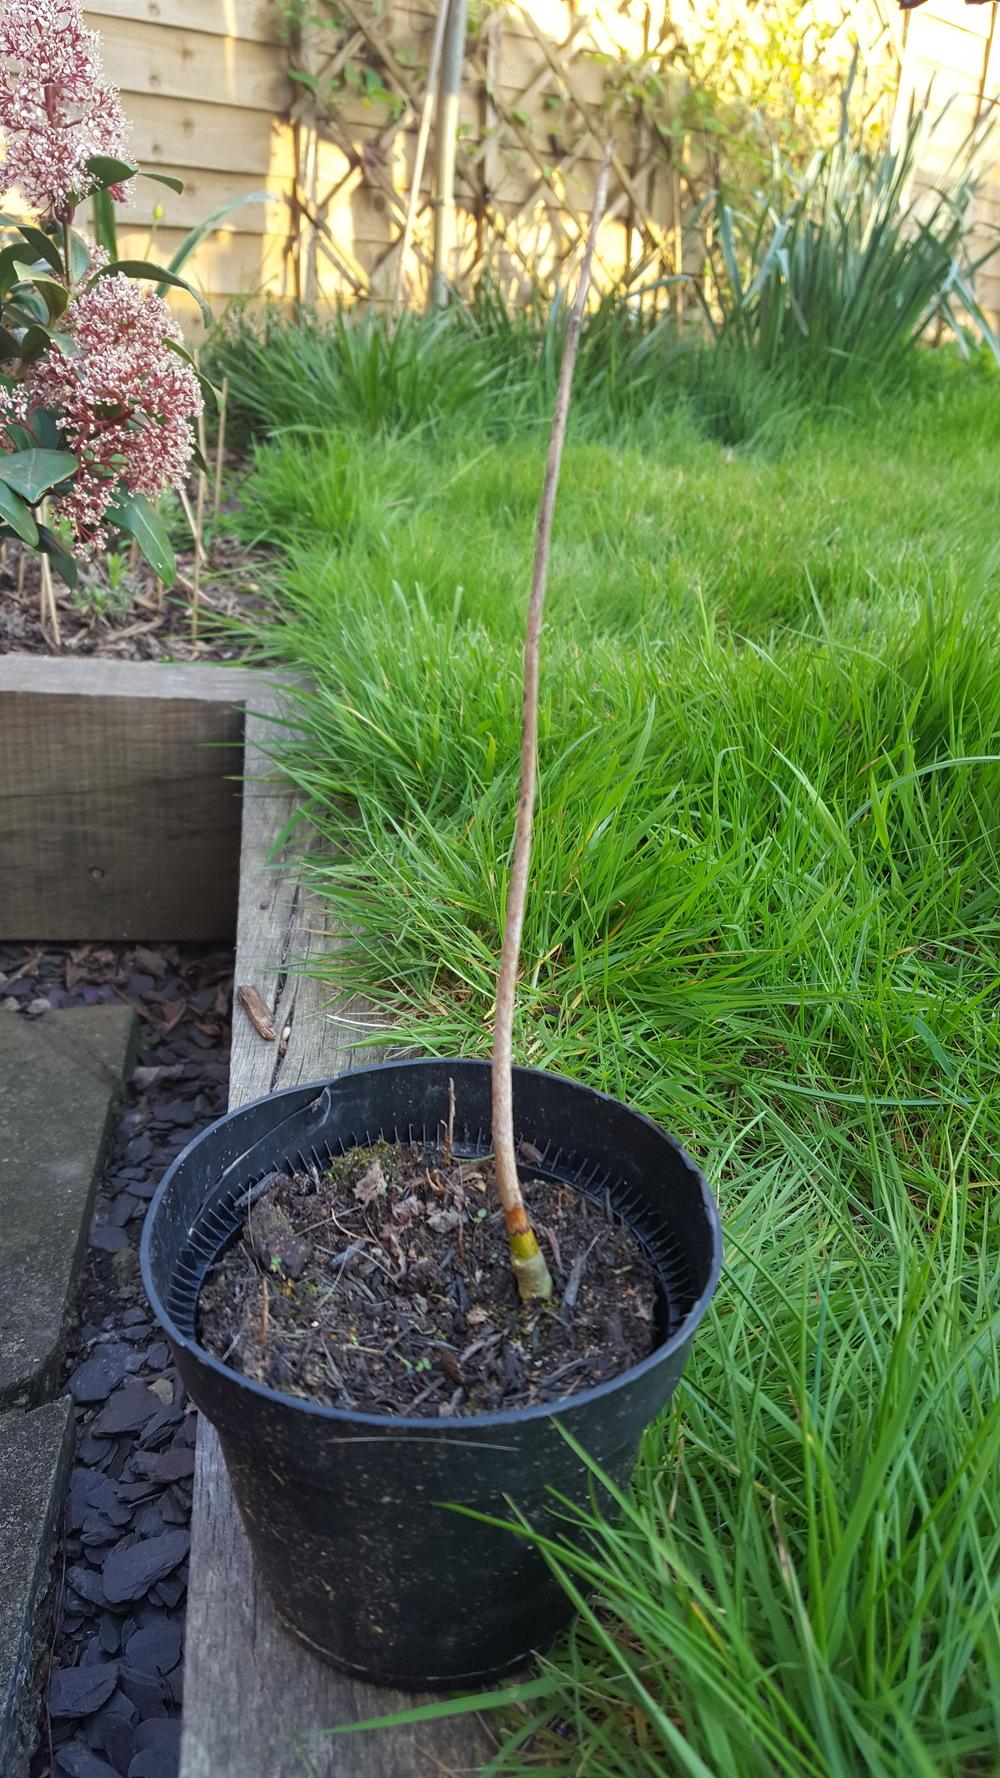 Plant Id Forum I Seem To Have Grown A Stick